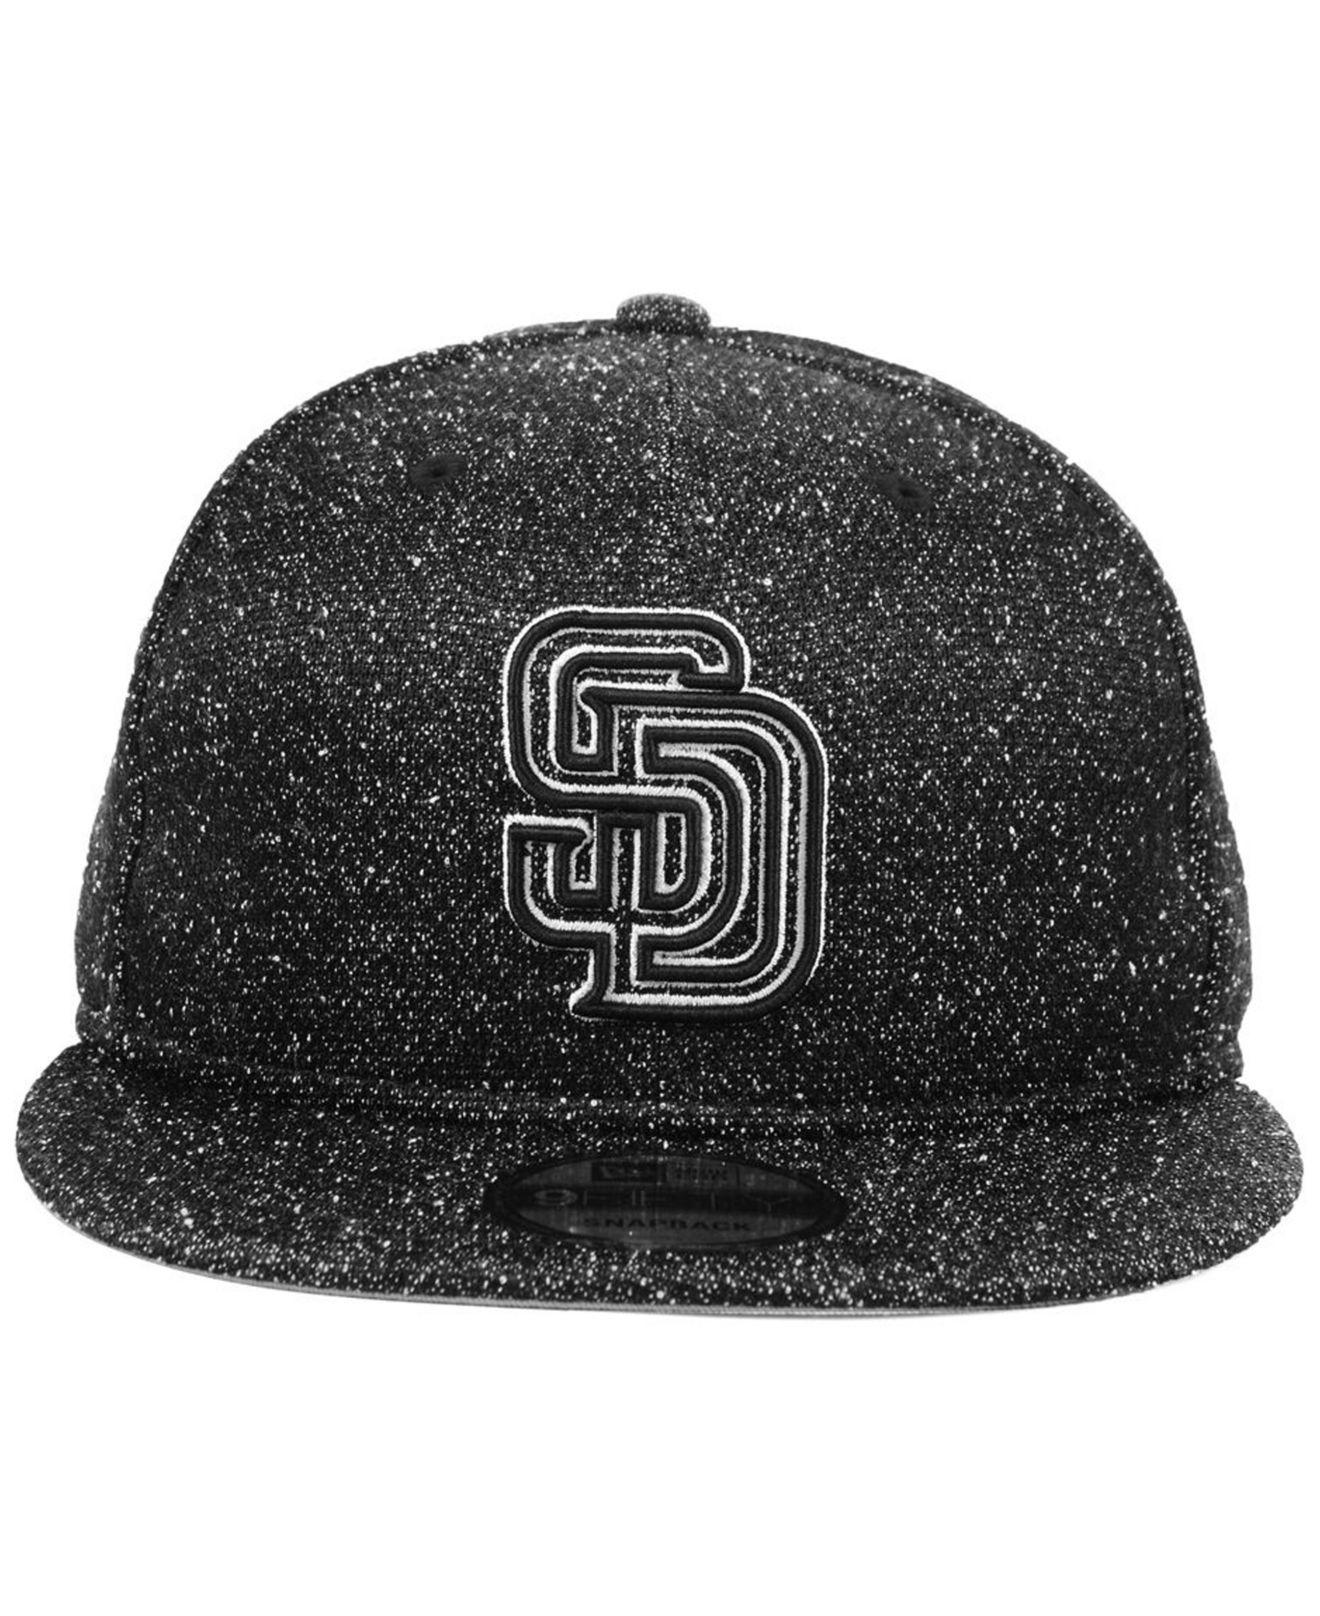 03ce58f91ea06 ... sweden lyst ktz san diego padres spec 9fifty snapback cap in black for  men 11422 b594f